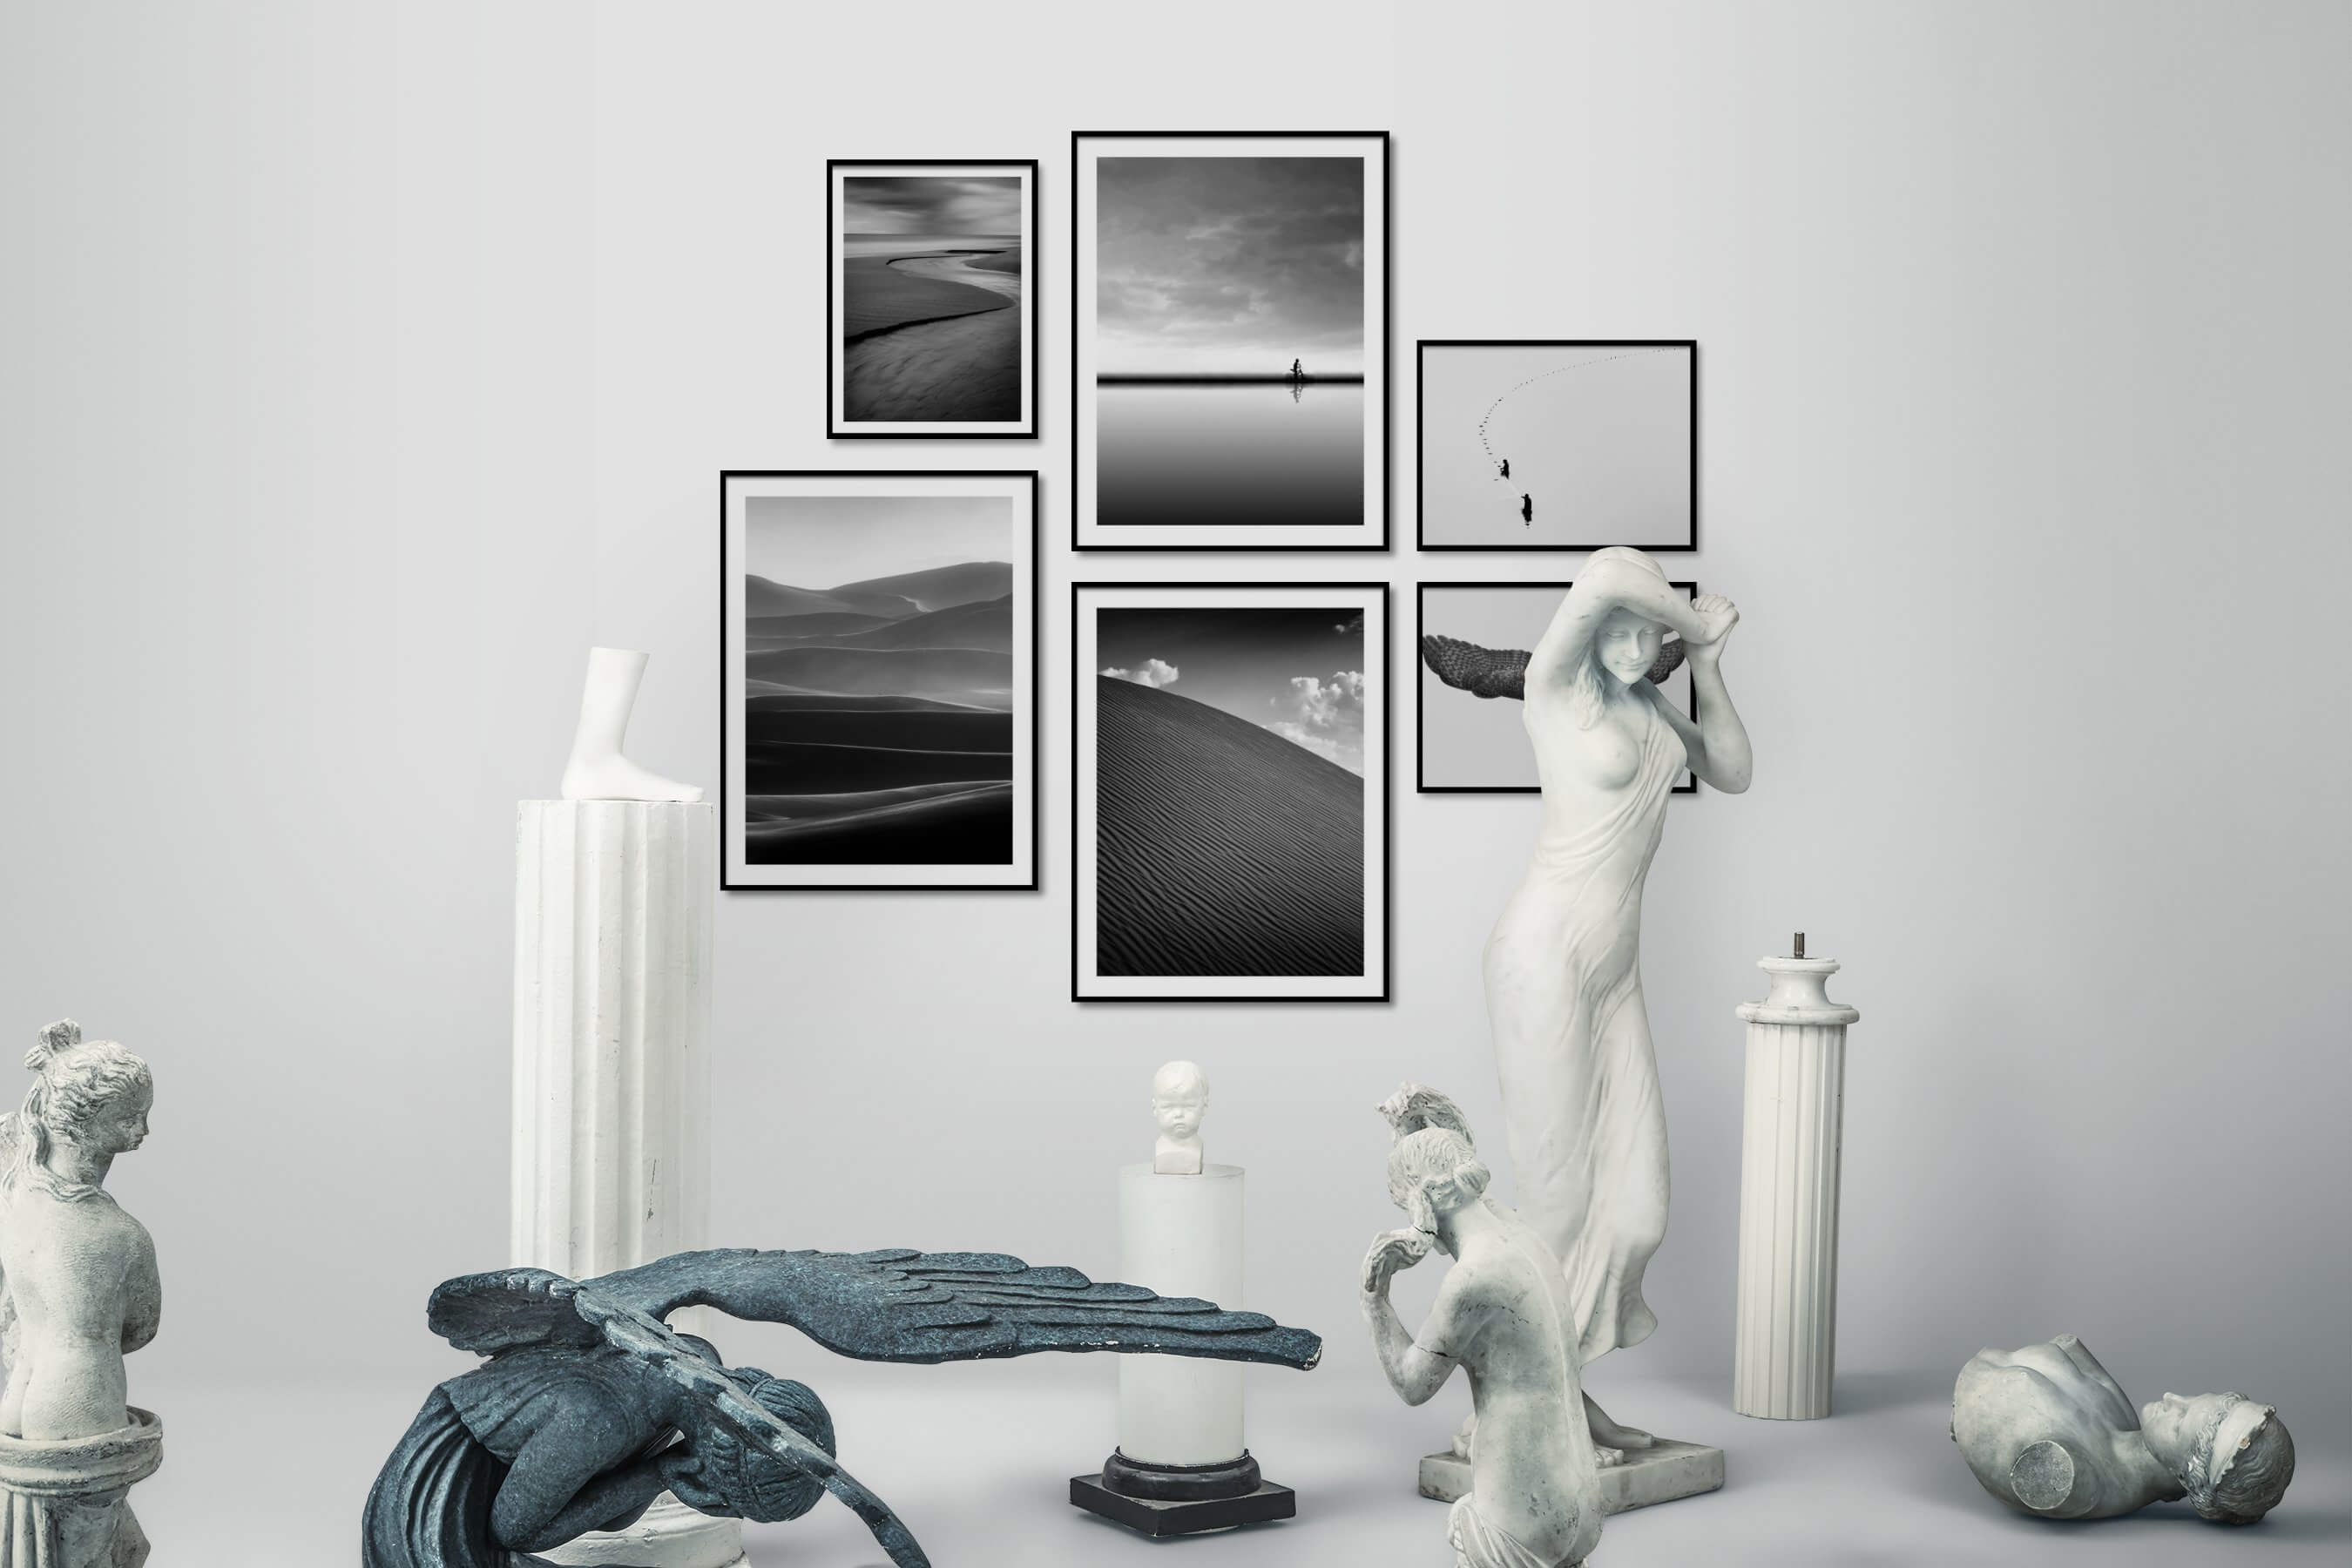 Gallery wall idea with six framed pictures arranged on a wall depicting Black & White, Beach & Water, For the Minimalist, Country Life, Mindfulness, For the Moderate, Nature, Bright Tones, and Animals